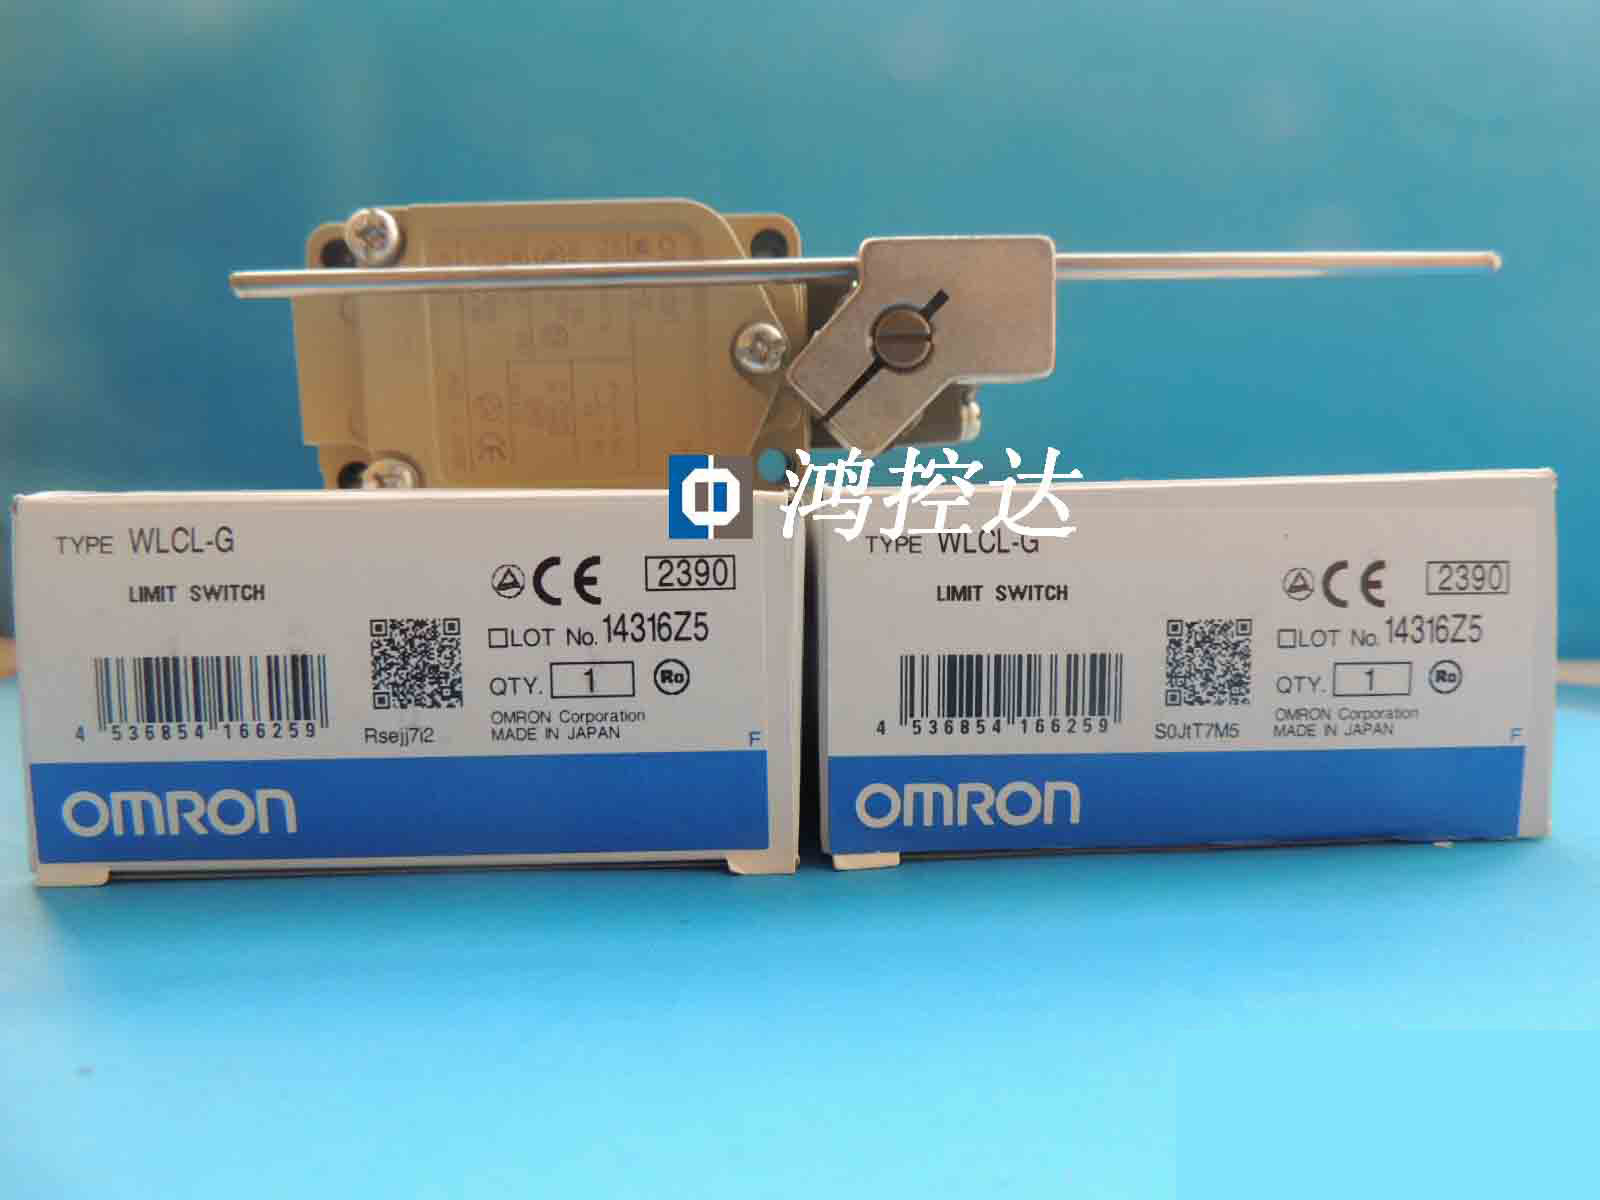 Brand new original Omron stroke switch WLCL-G warranty for one yeaBrand new original Omron stroke switch WLCL-G warranty for one yea